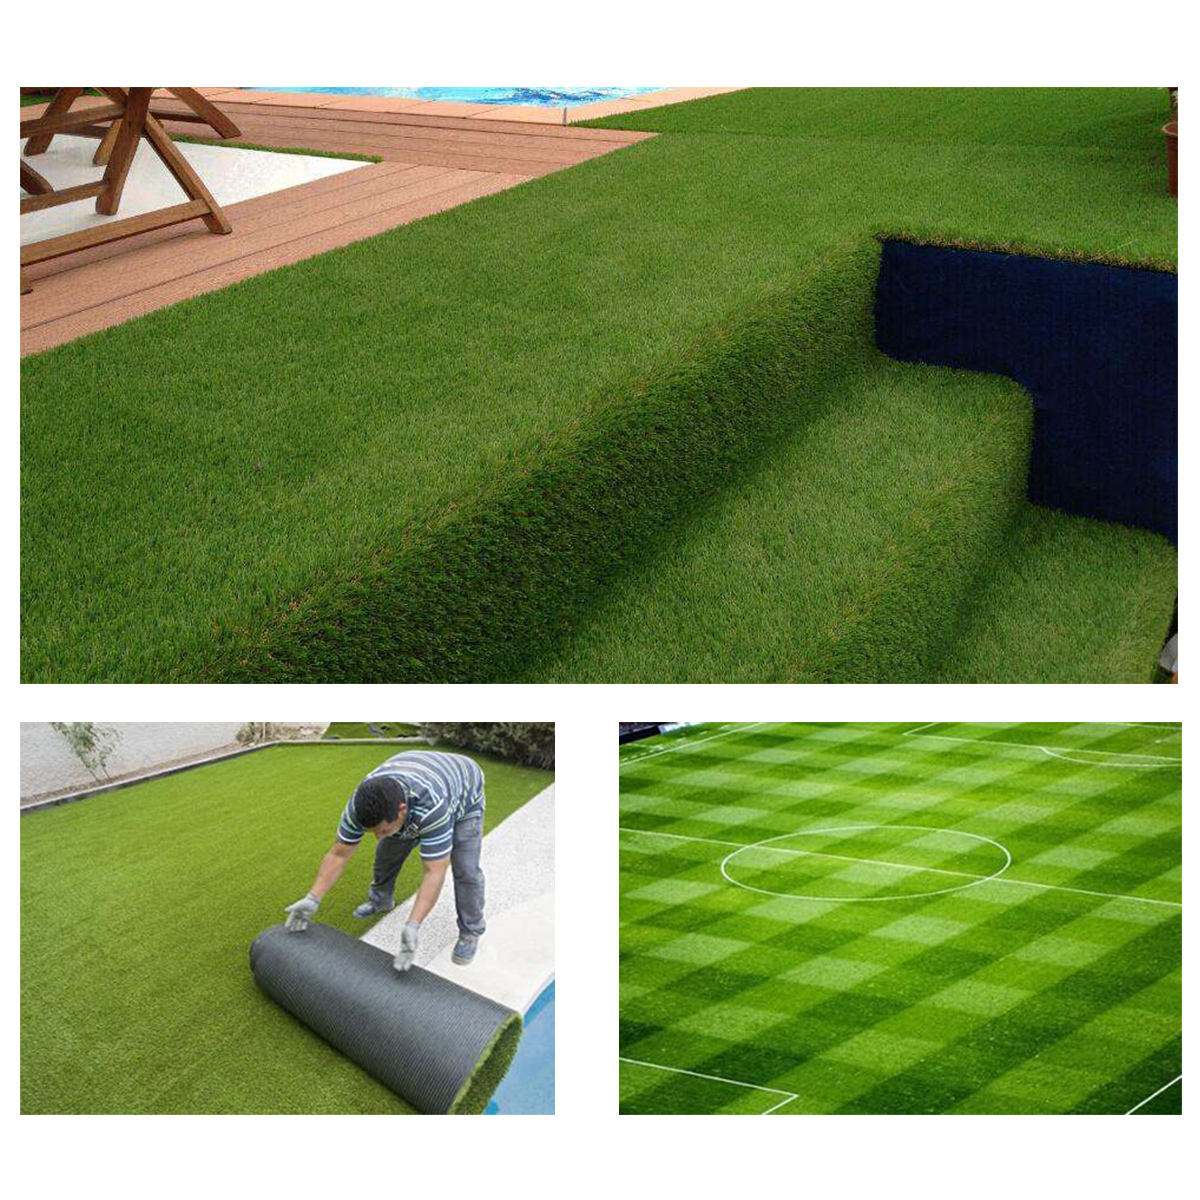 5x0.15m Self-Adhesive Artificial Turf Tape Synthetic Turf Grass Joining Lawn Tape Glue